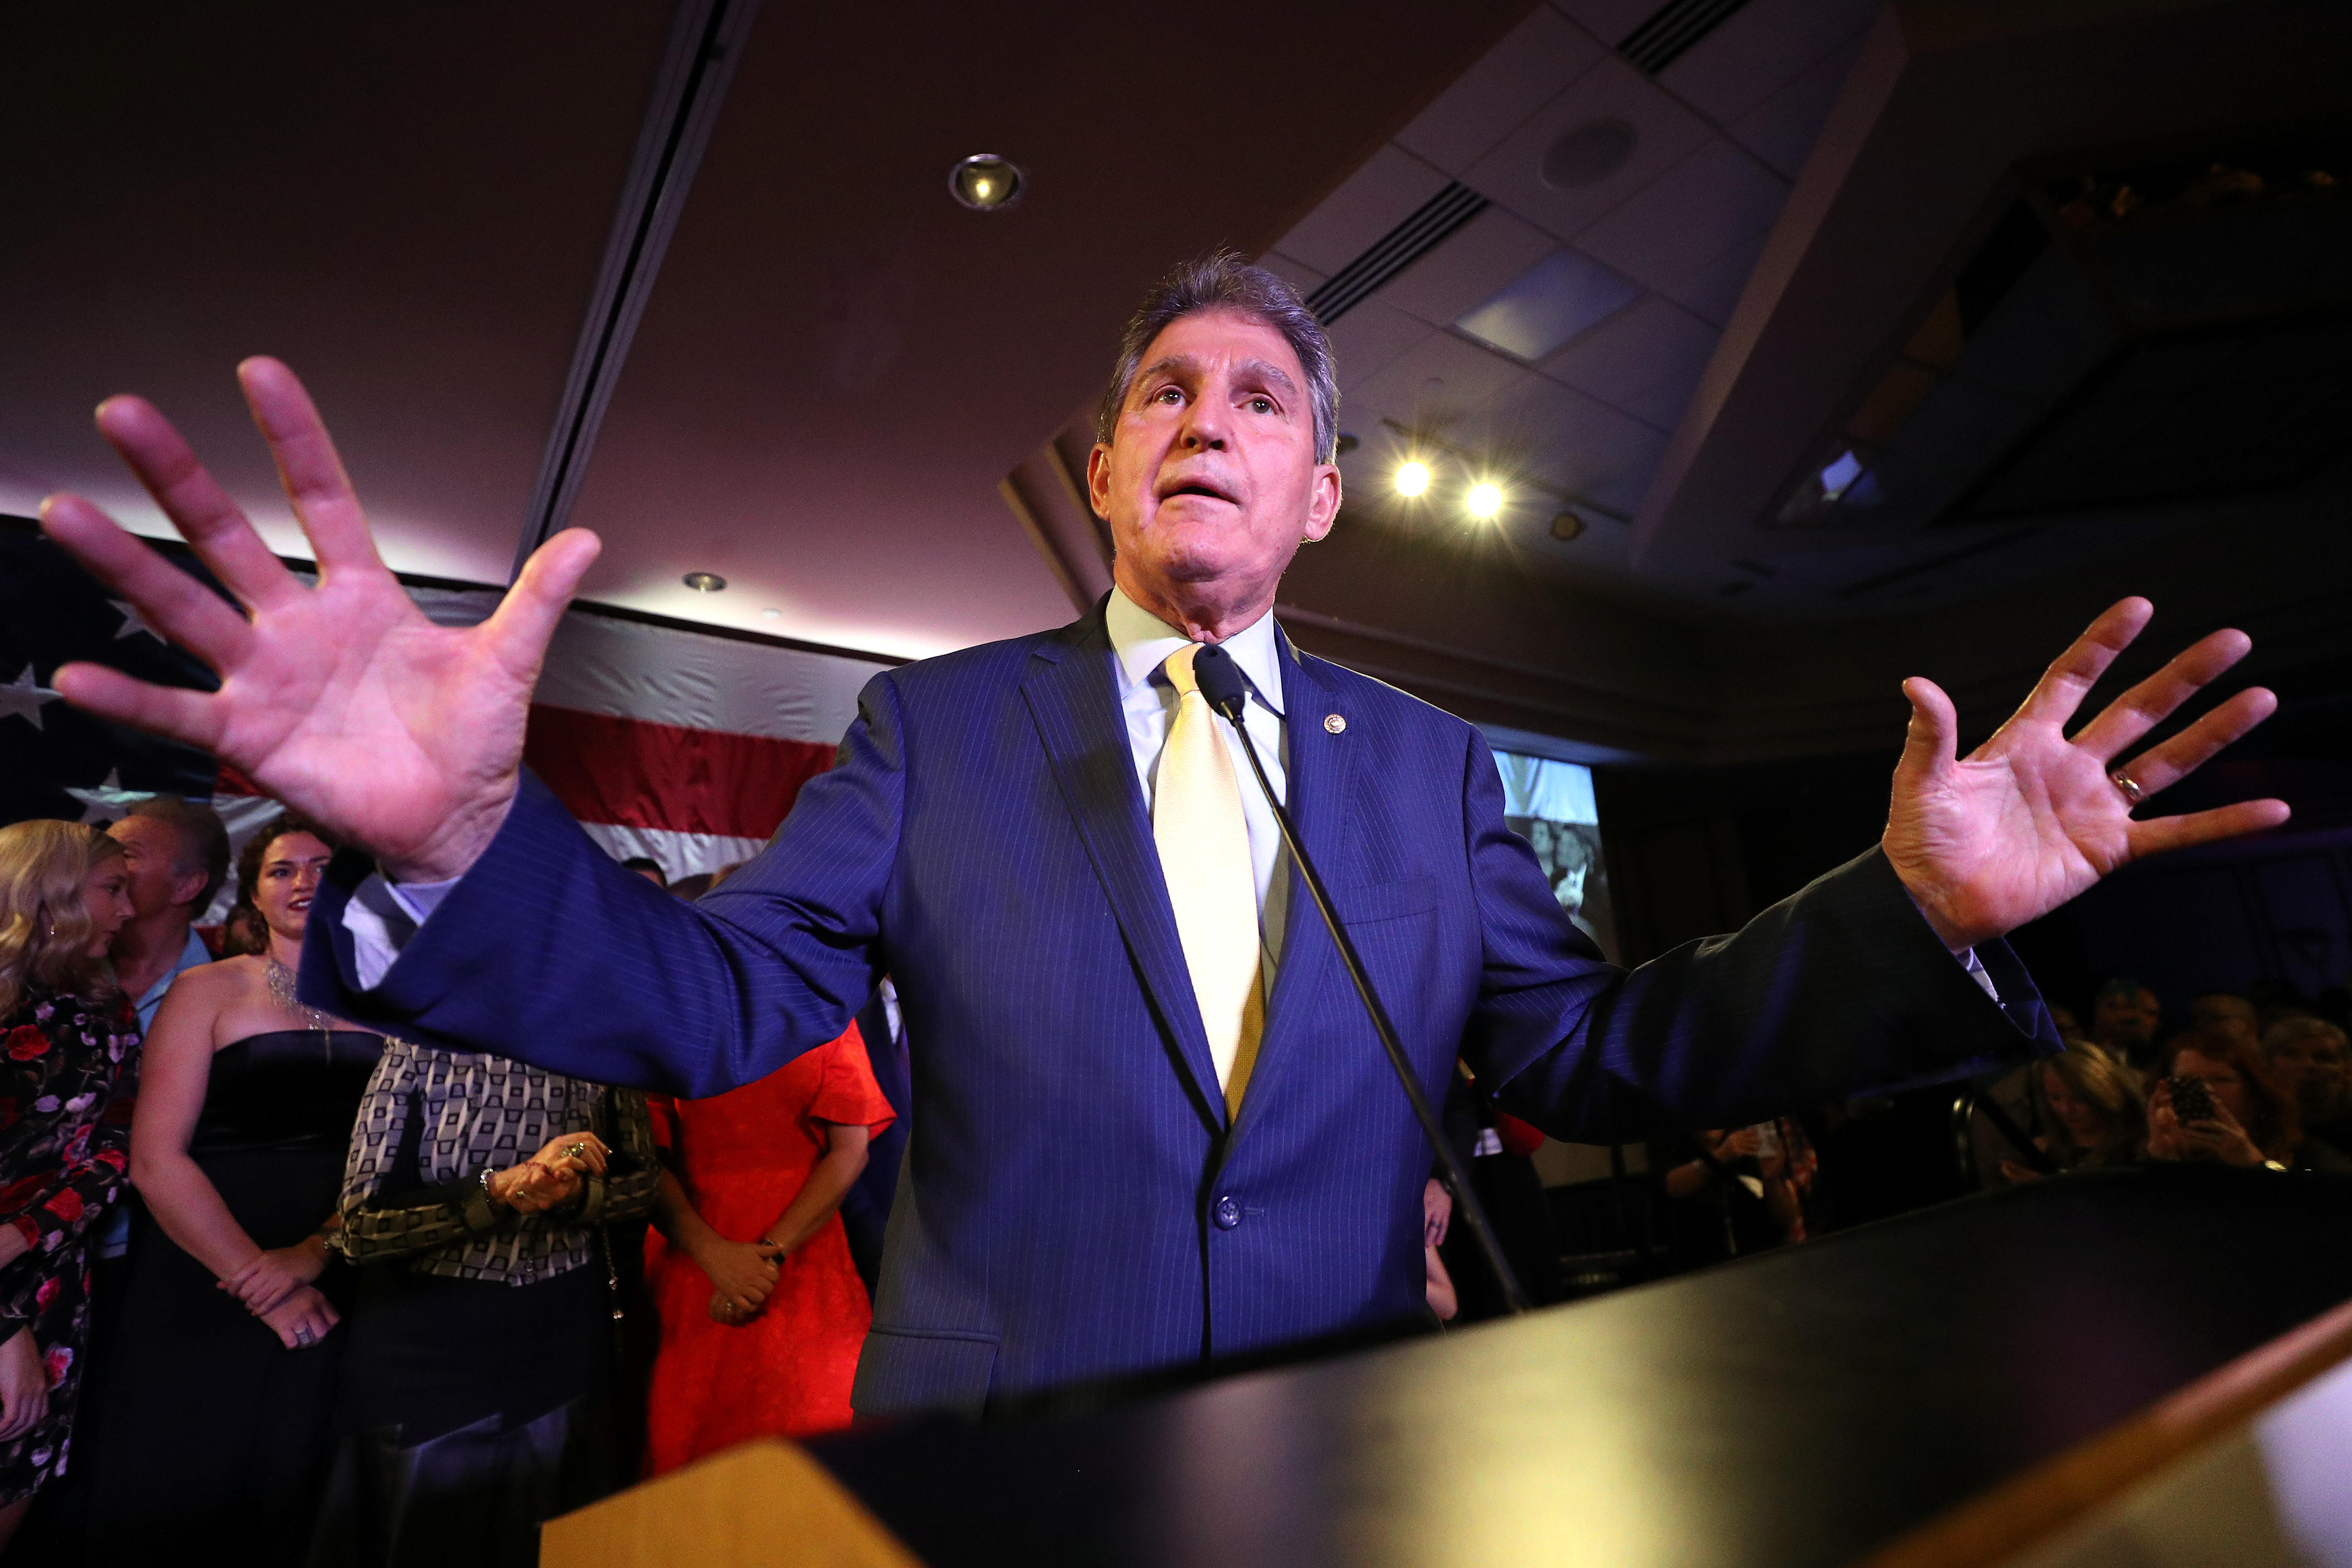 Sen. Joe Manchin celebrates at his election day victory party at the Embassy Suites on November 6, 2018 in Charleston, West Virginia. (Patrick Smith/Getty Images)